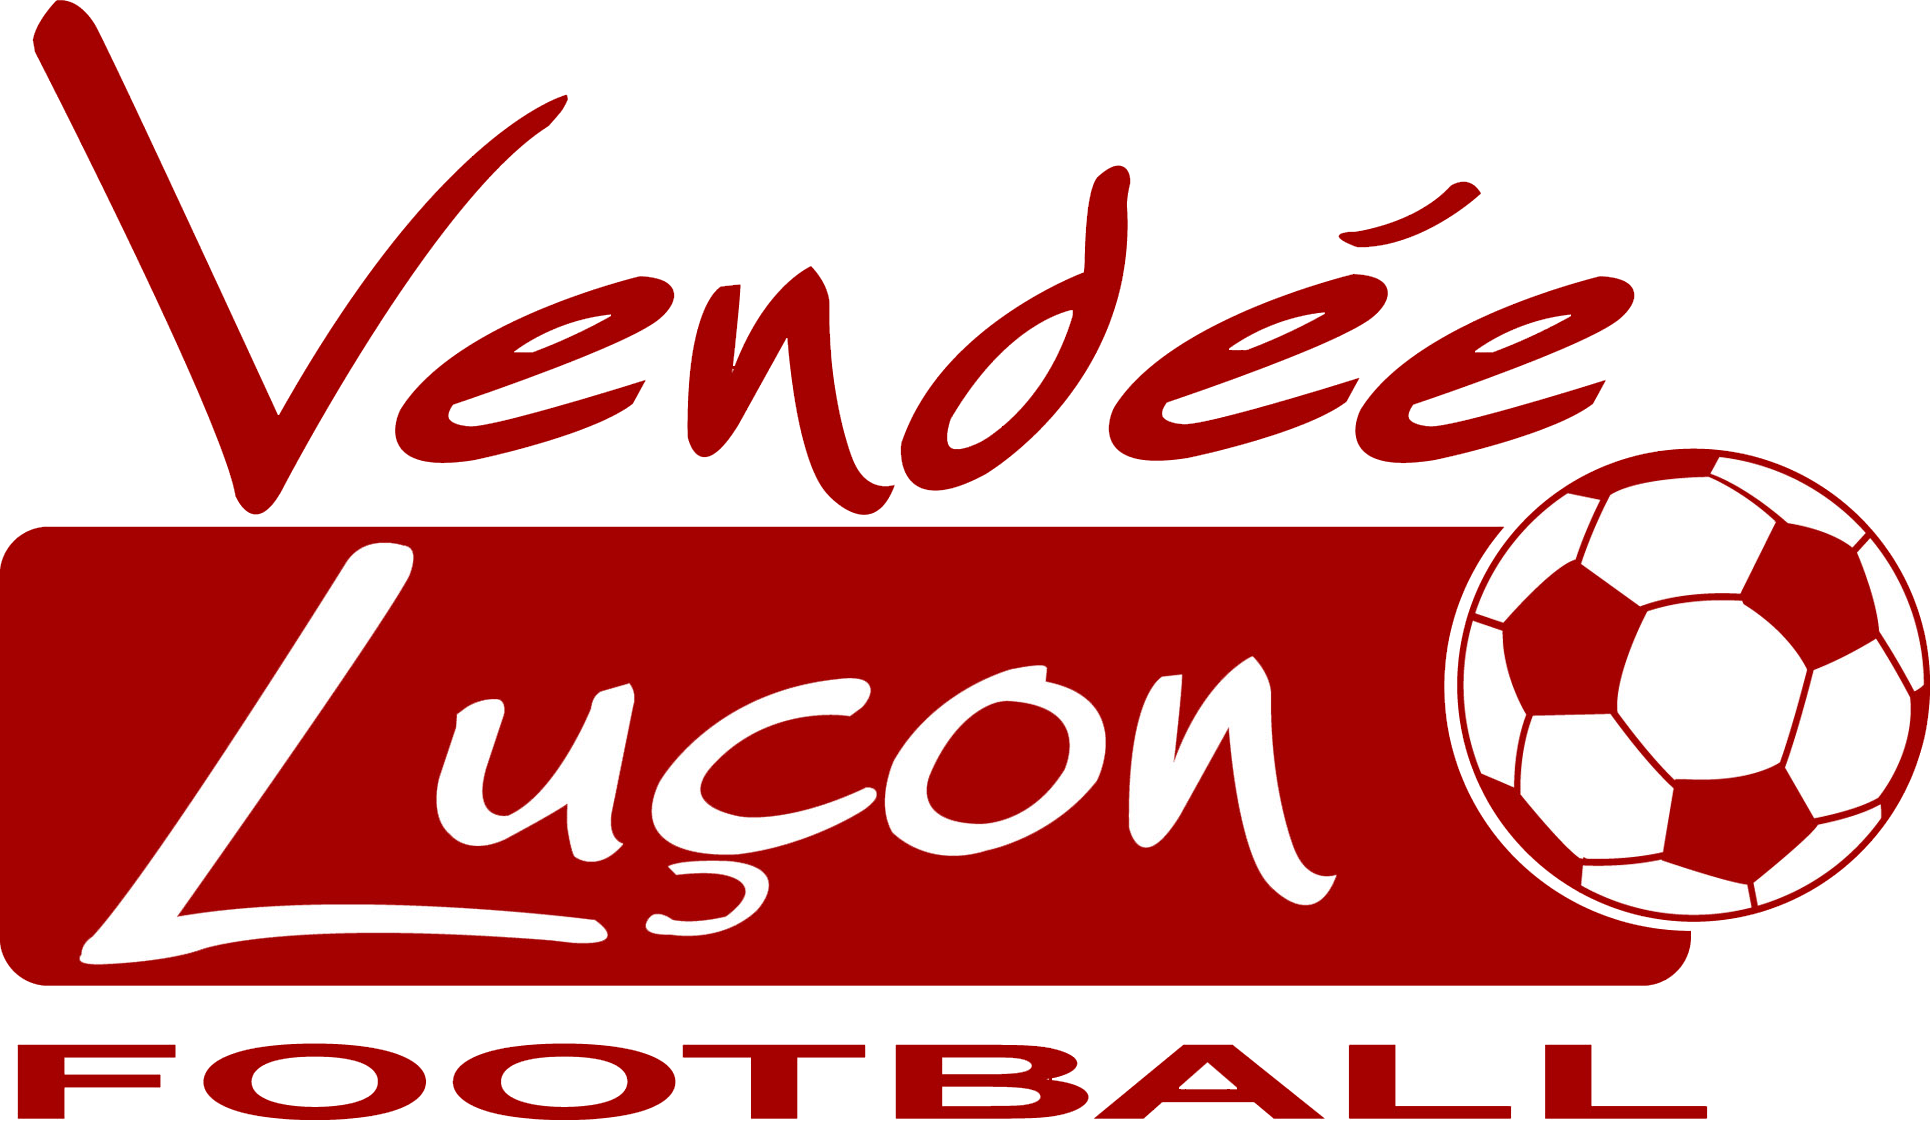 logo-vendee-lucon-football